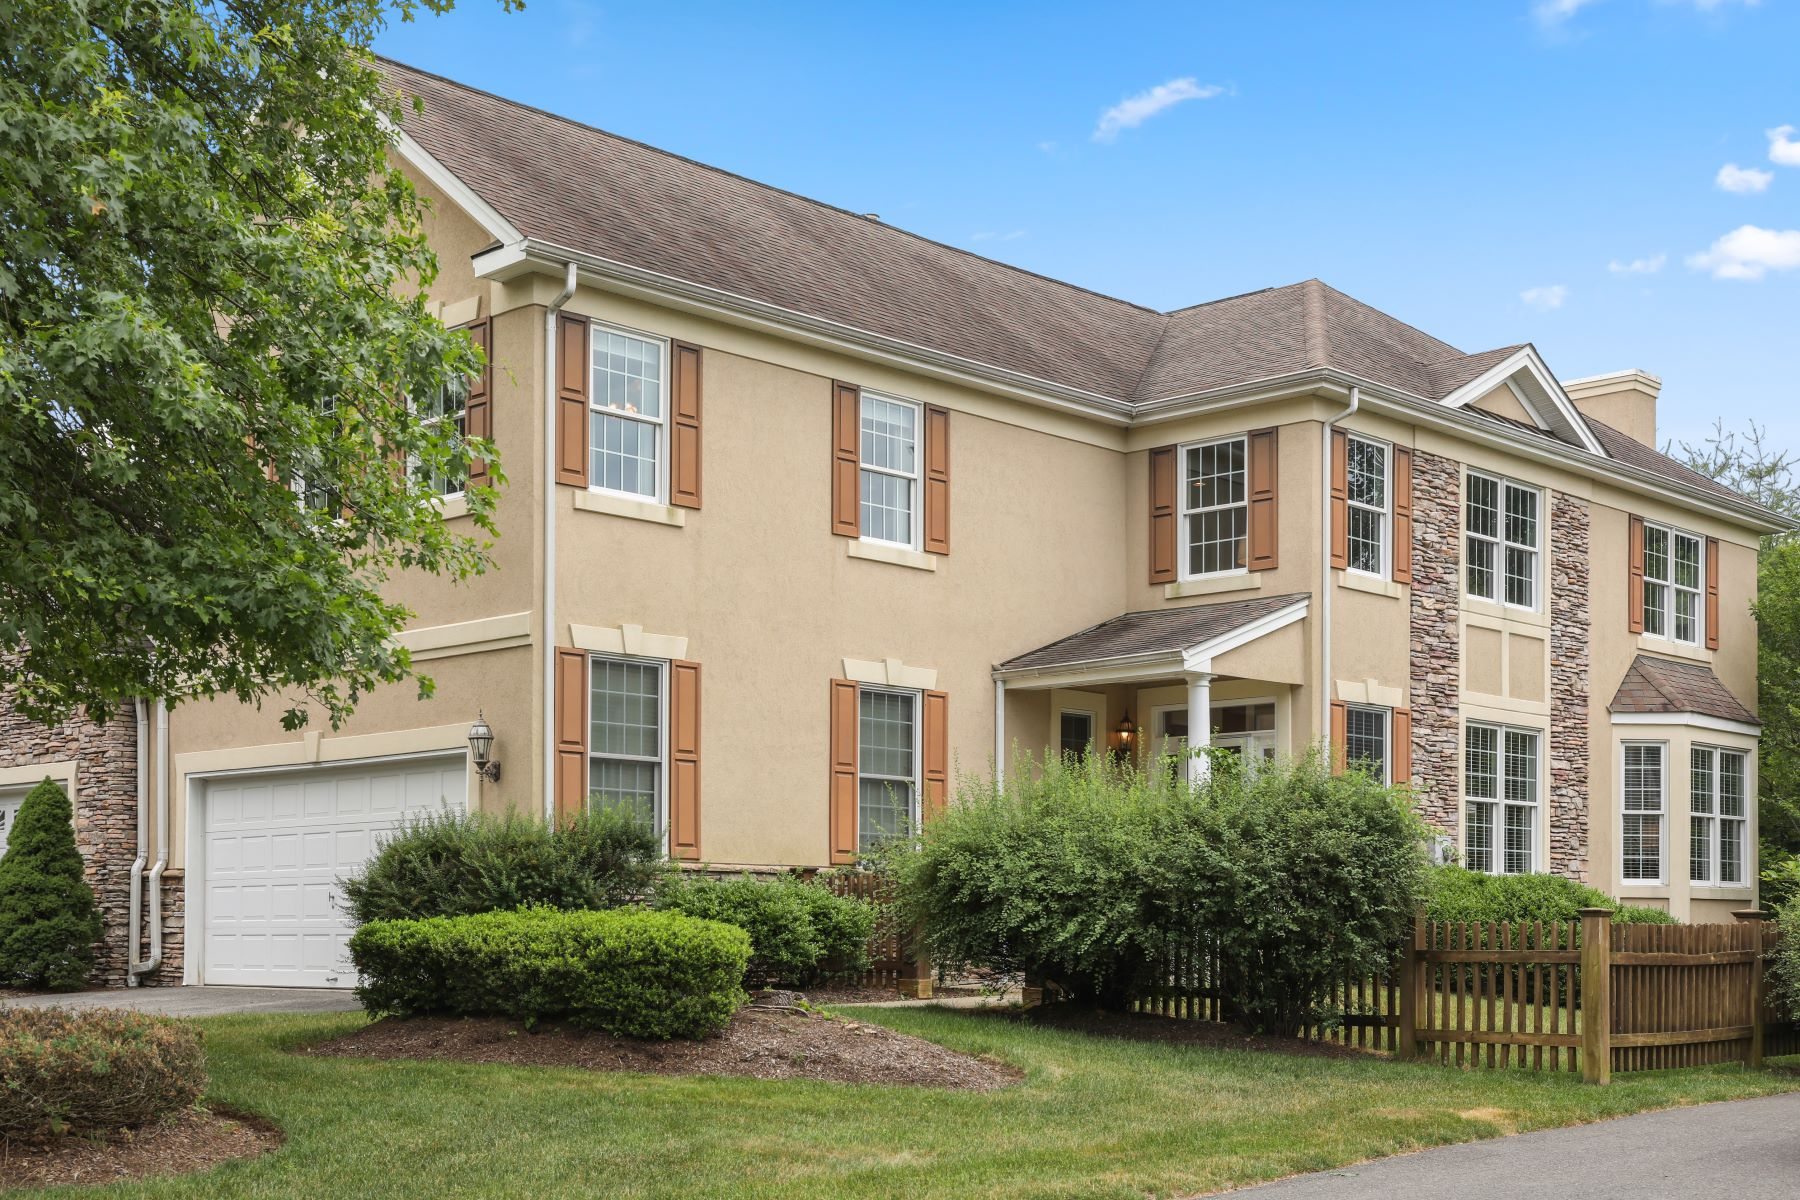 townhouses for Active at Maintained Townhome 25 Wyckoff Way Chester Township, New Jersey 07930 United States